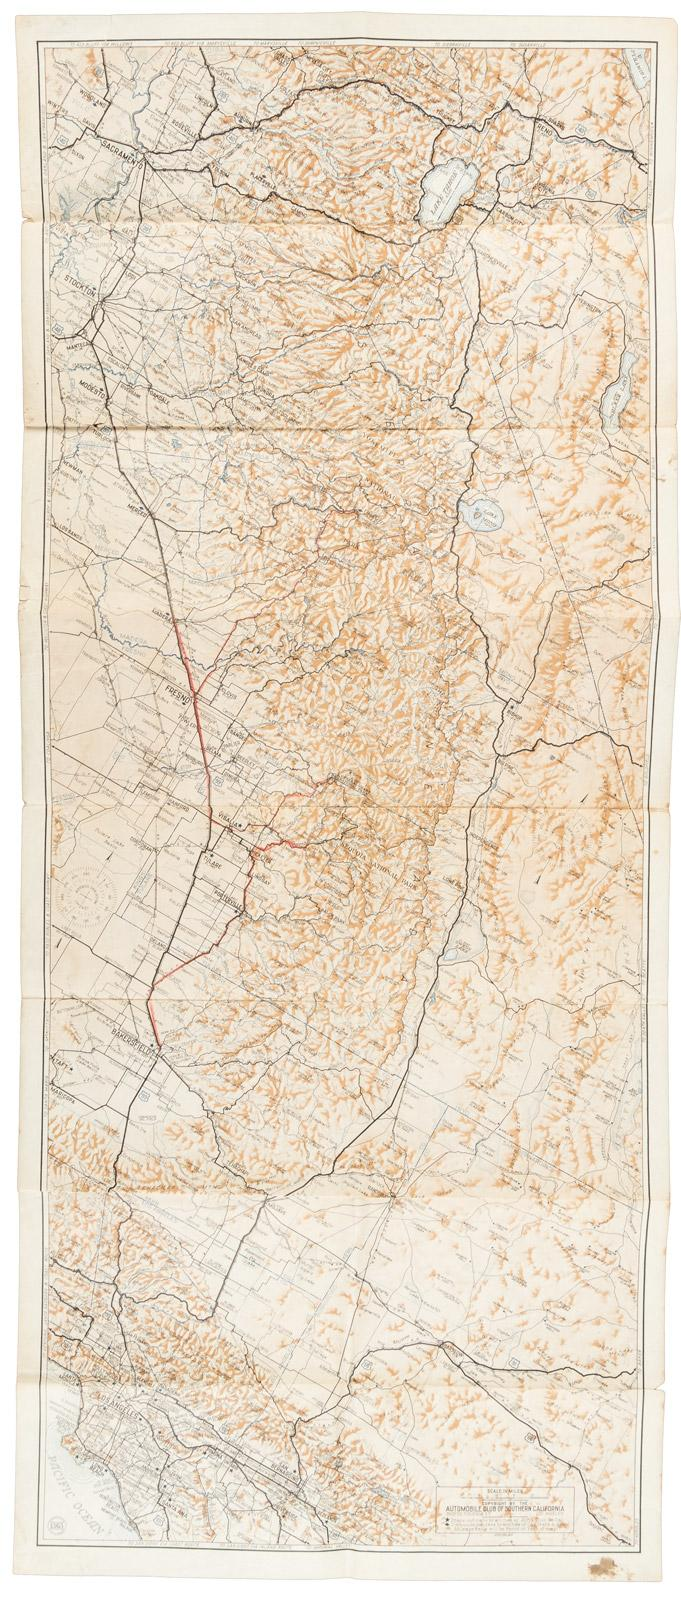 Automobile road map of the east central section of ... on napa county road map, central california relief map, california coast map, alameda county road map, nevada road atlas map, yosemite valley road map, los angeles road map, central valley california map, san joaquin county road map, northern new hampshire road map, pasadena road map, big sur road map, california highway map, contra costa county road map, san luis obispo california map, northern california map, santa rosa road map, san francisco bay area road map, central california town map, central california river map,